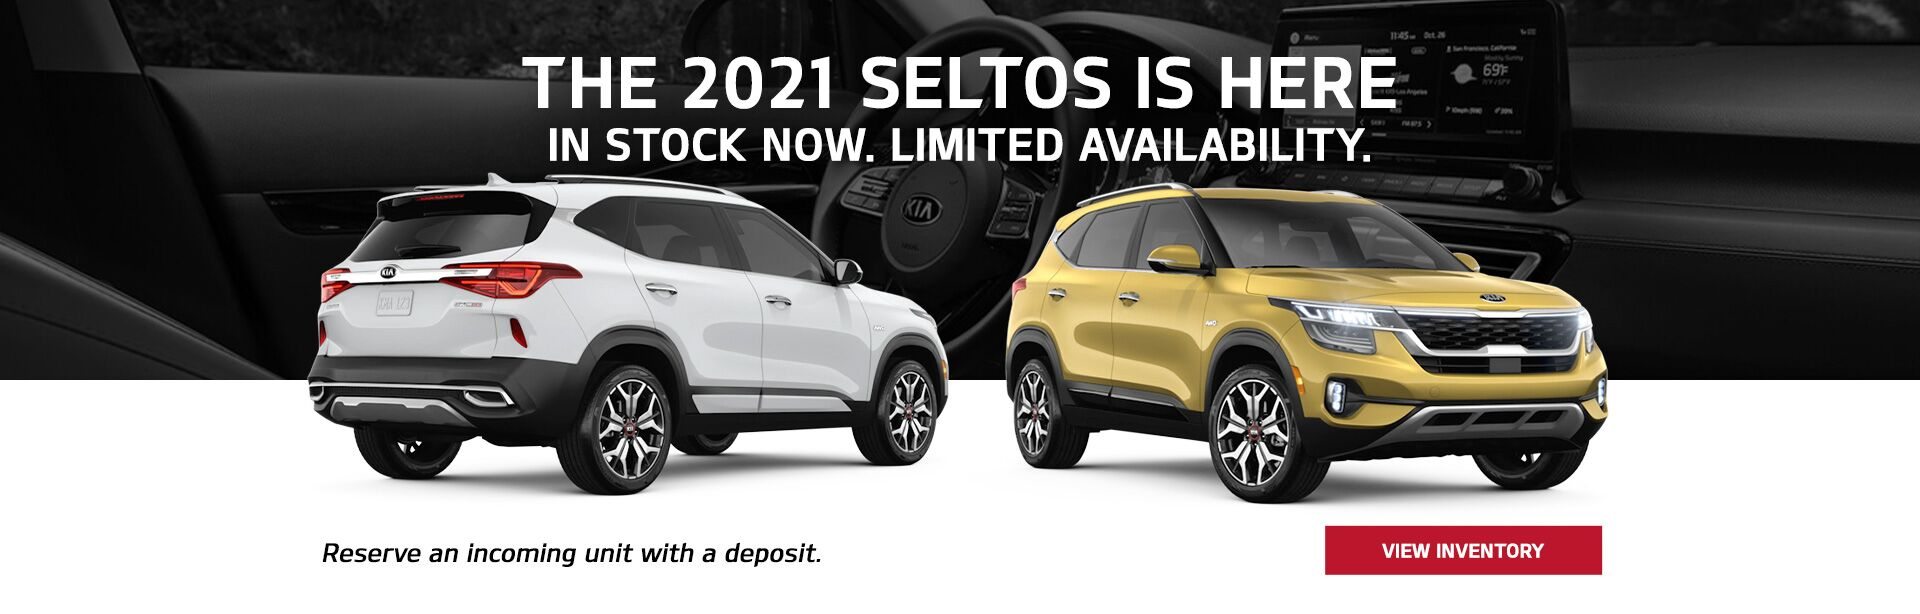 The All-New 2021 Kia Seltos is here!